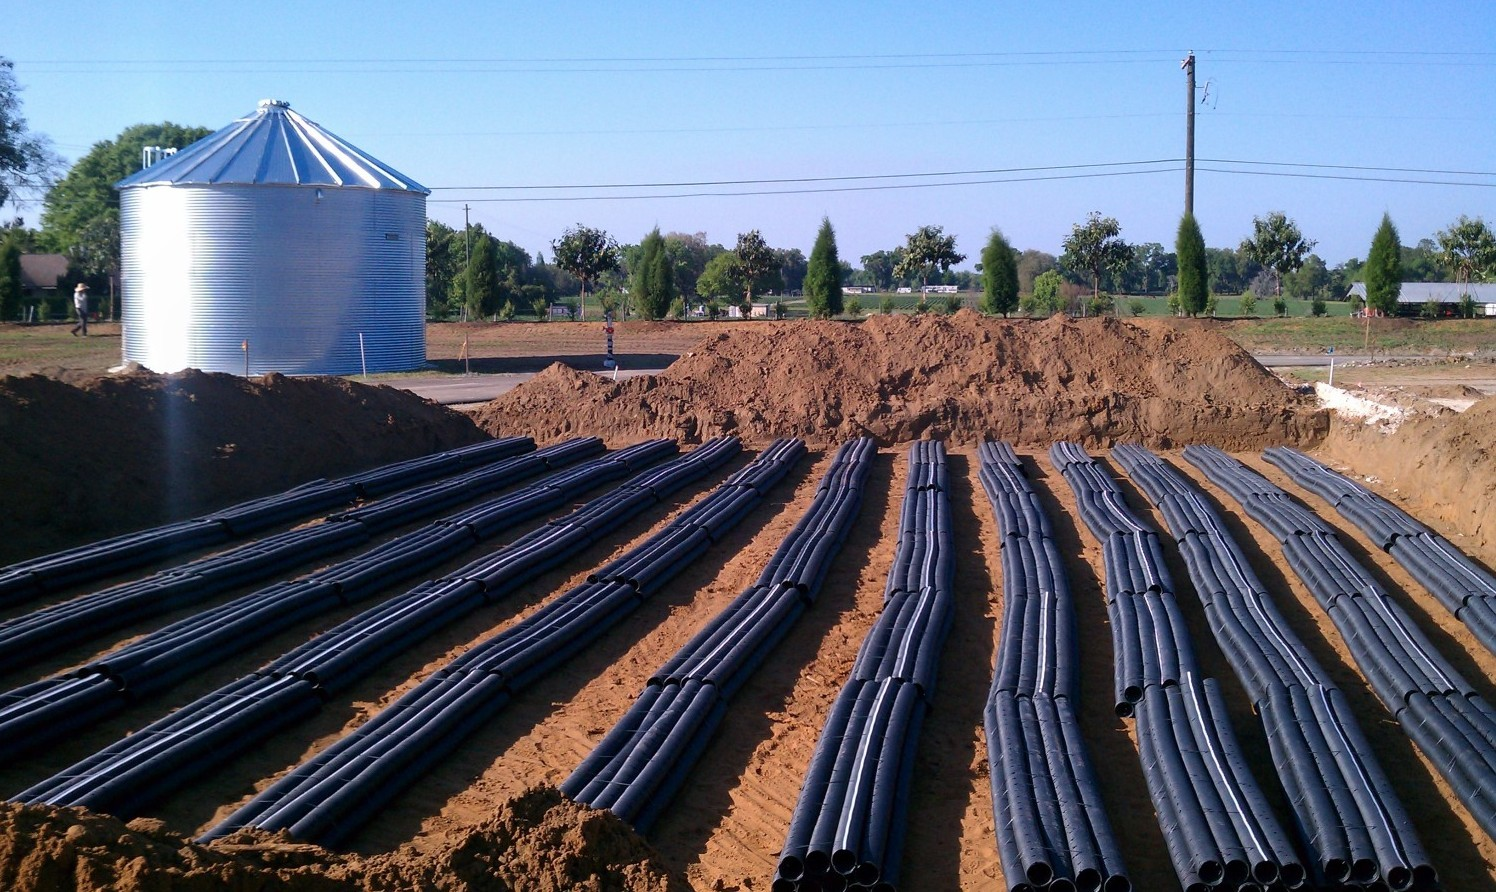 Business Septic System-San Diego Septic Tank Repair, Installation, & Pumping Service Pros-We do septic tank pumping, tank repairs, septic tank installations, 24/7 emergency septic services, septic tank replacement, inspections, drain cleaning, high velocity water jetting, septic system cleaning, pump-outs, septic tank maintenance, and more